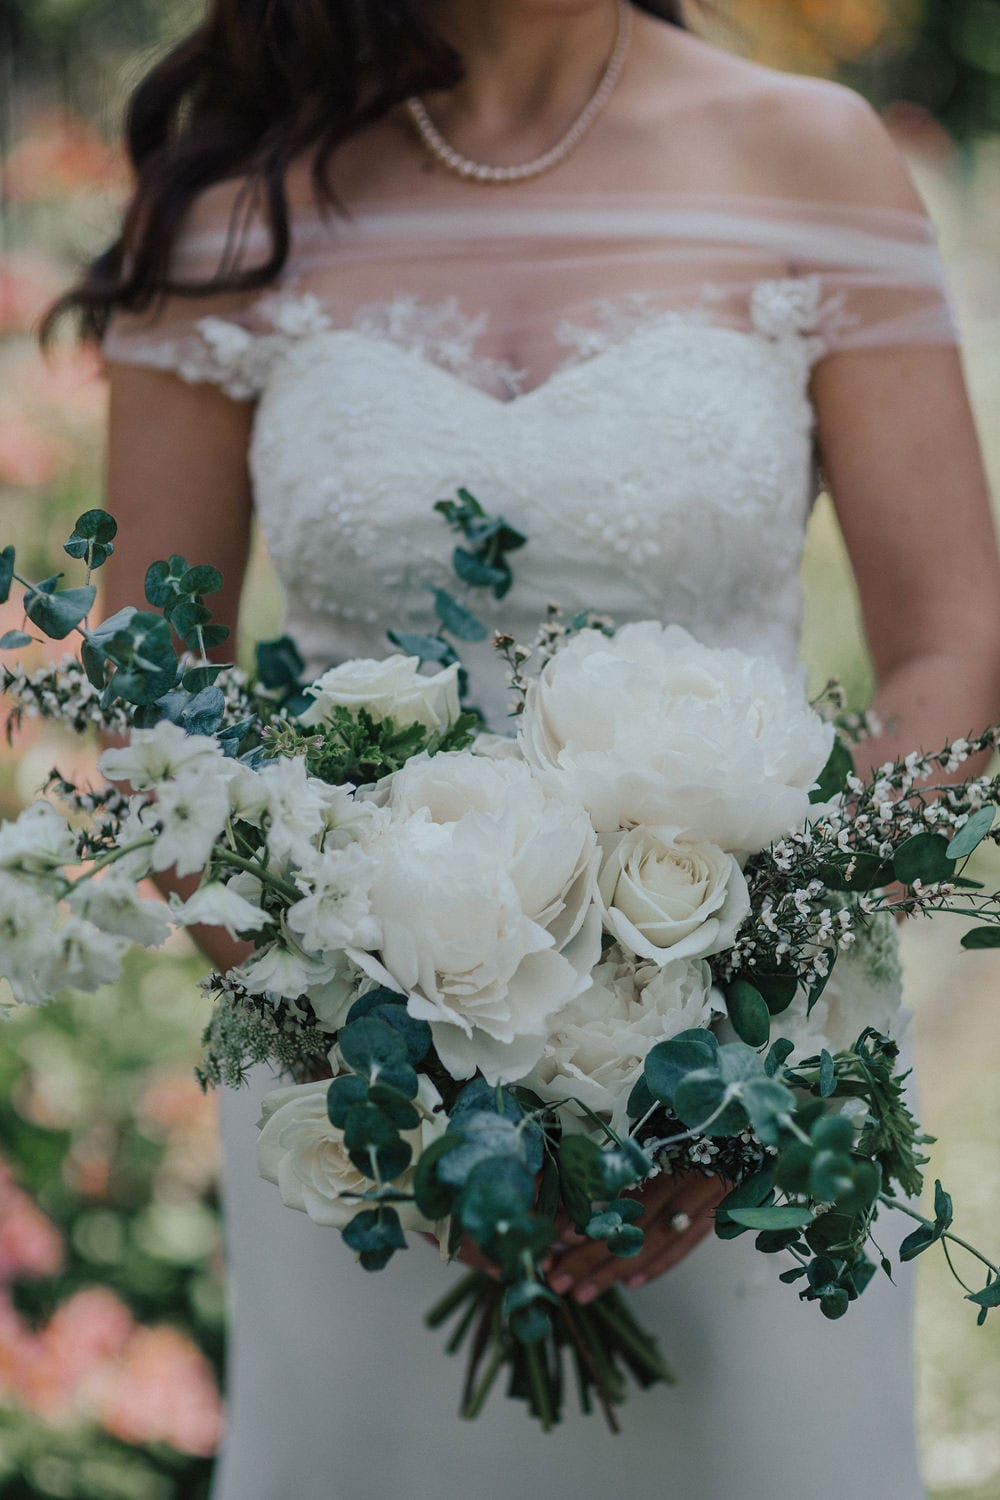 Vinka Design Features Real Weddings - bride wearing custom made lace wedding gown. Bouquet close up, dress detail